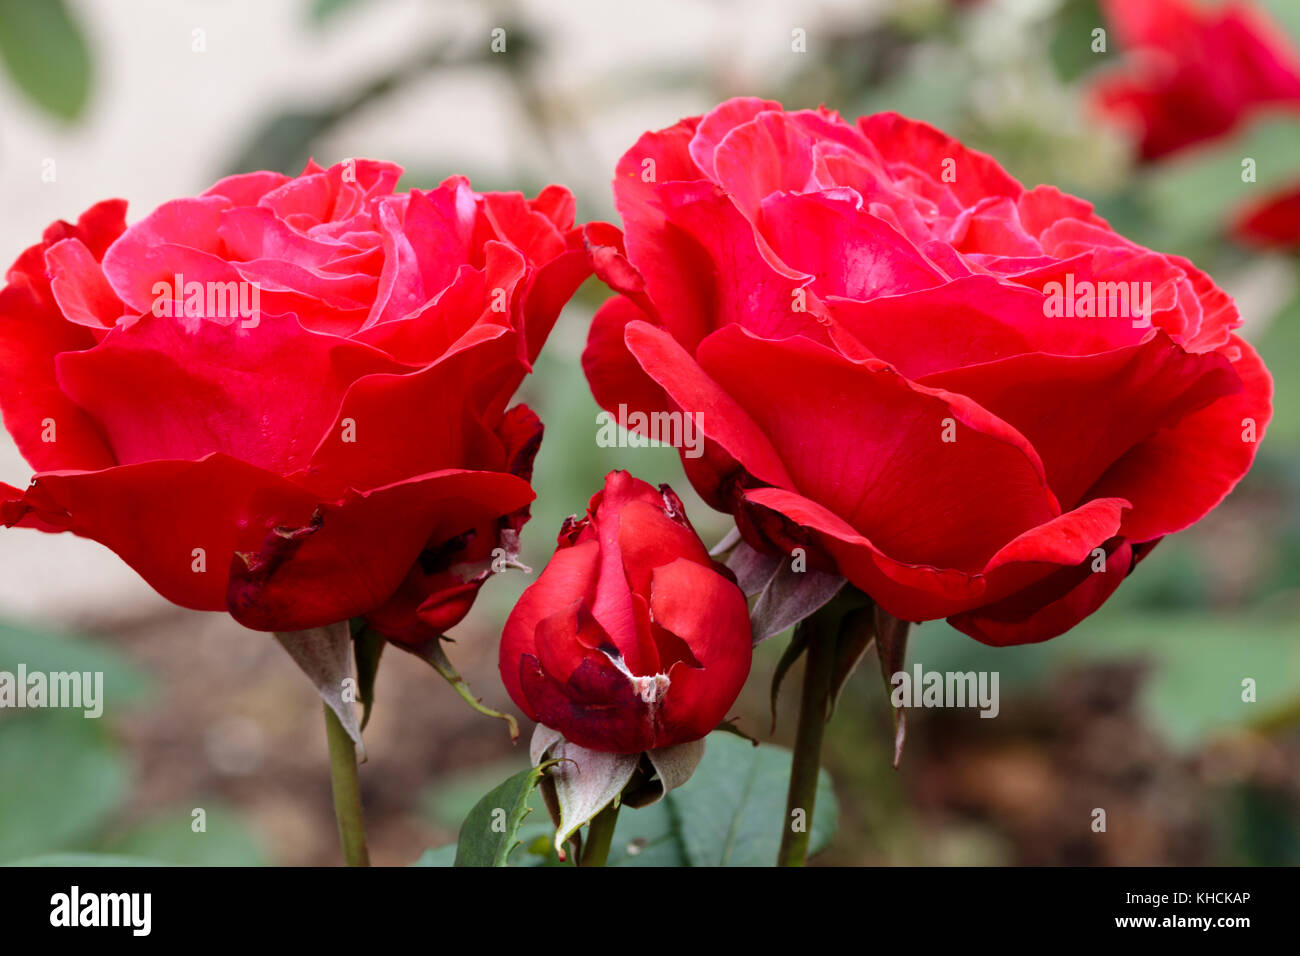 Red flowers and bud of the repeat blooming hyrid tea shrub rose, Rosa 'Alec's Red' - Stock Image